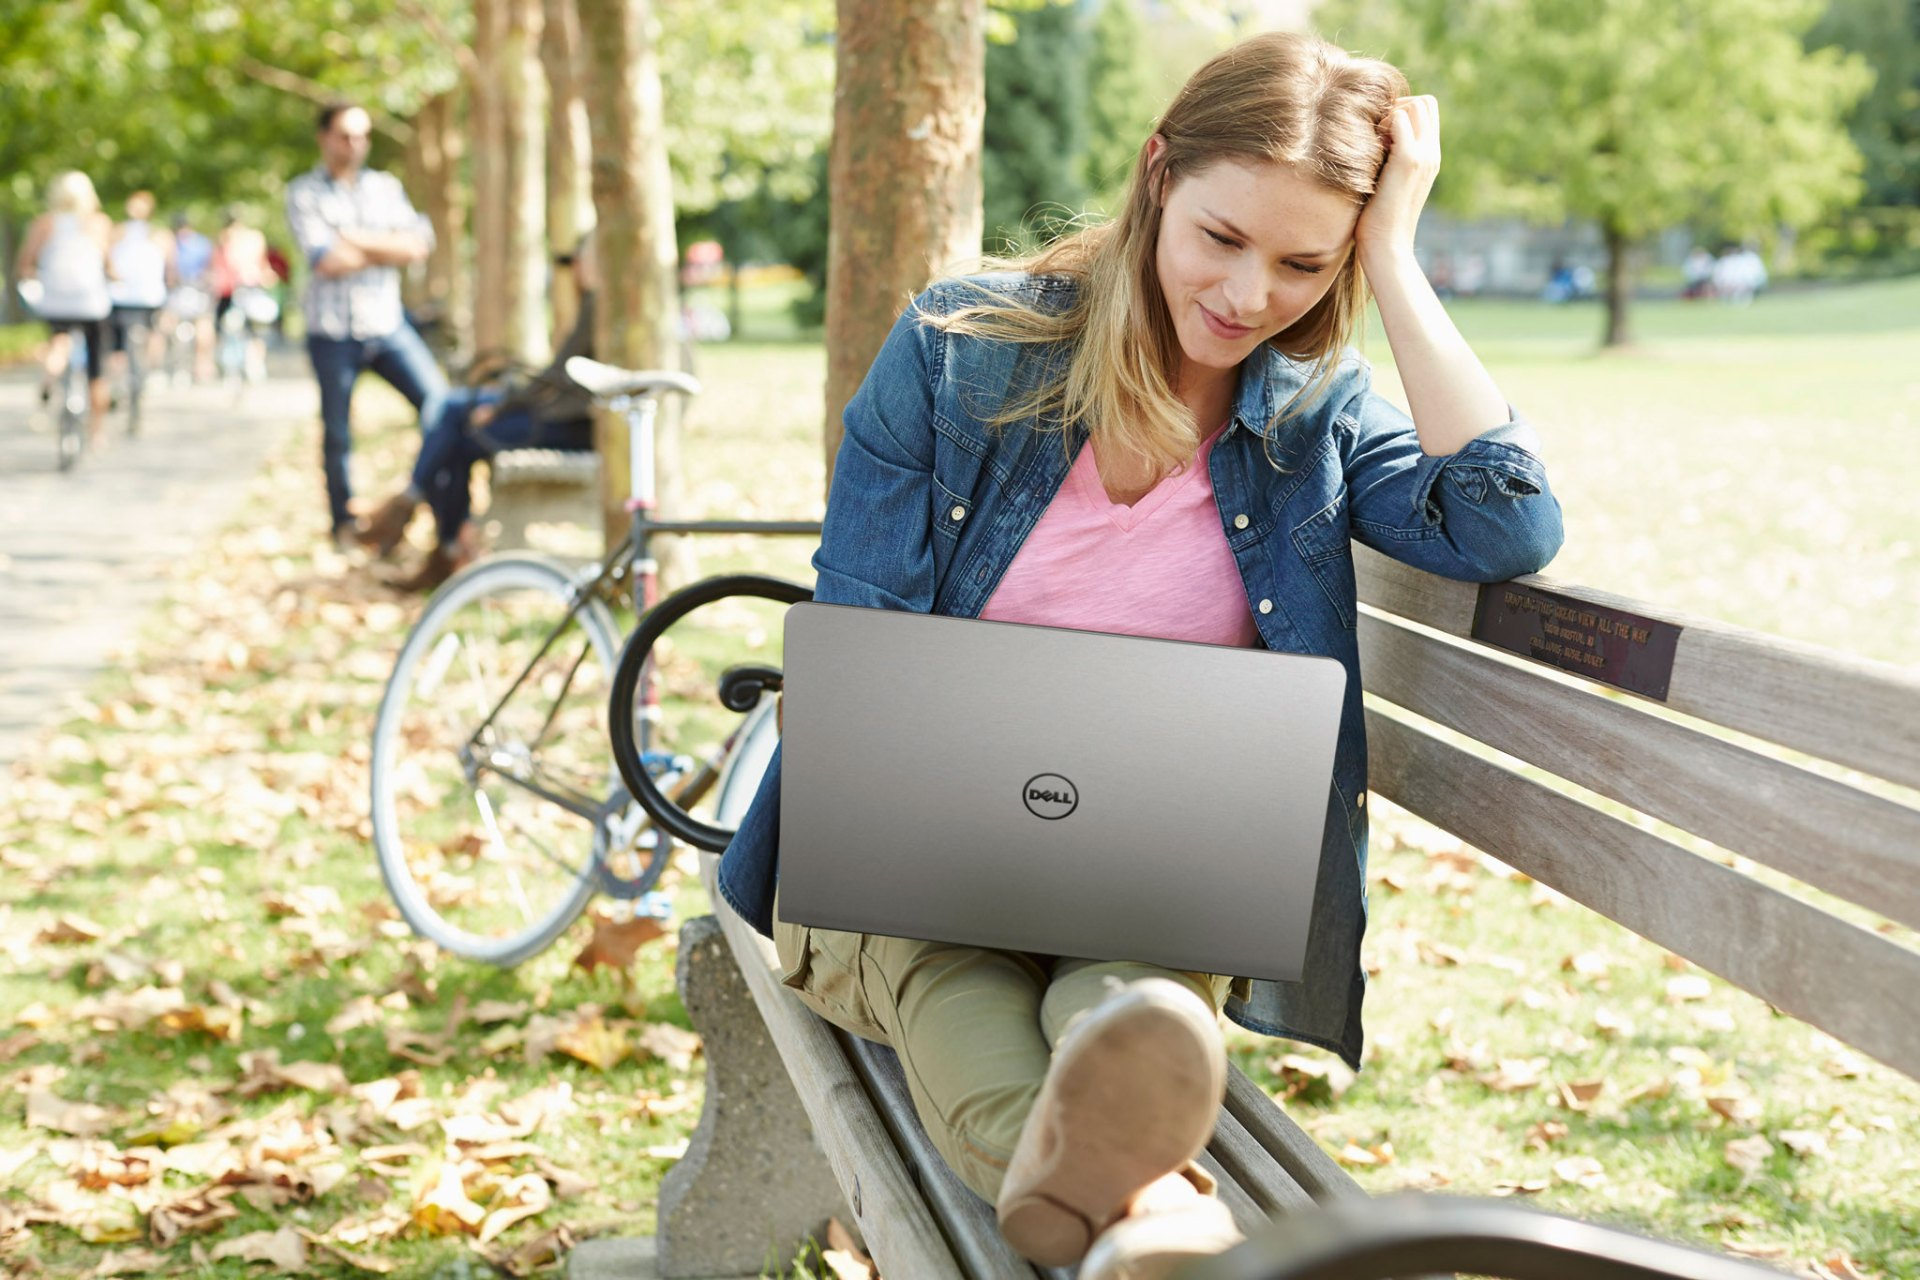 Female in Park using Inspiron 15 5000 Series Notebook